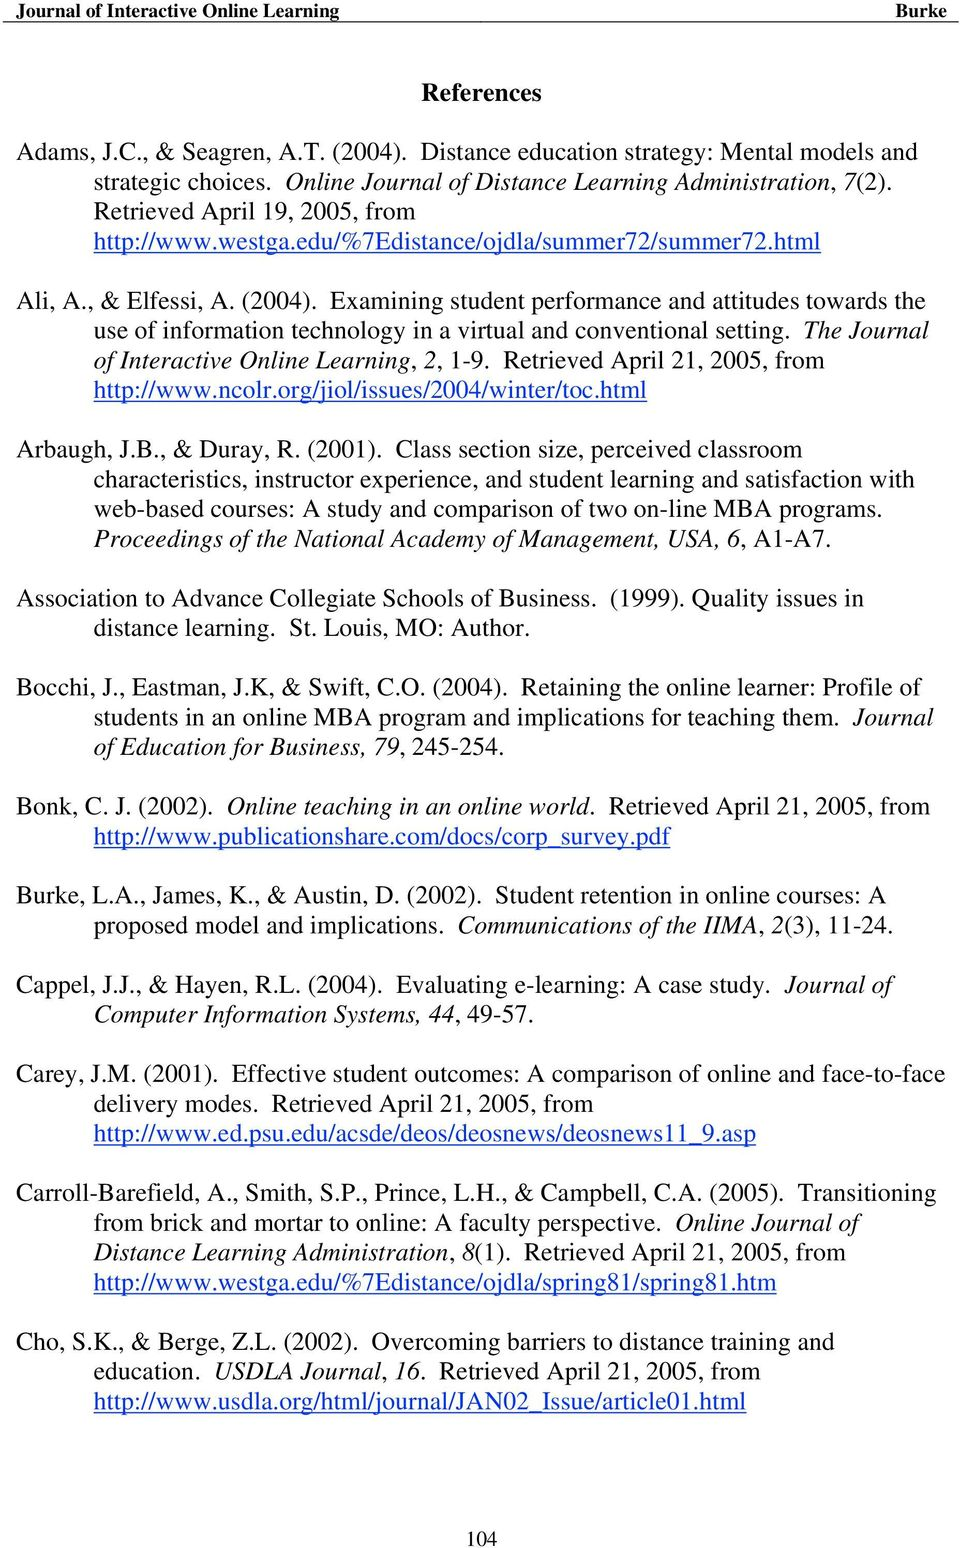 Examining student performance and attitudes towards the use of information technology in a virtual and conventional setting. The Journal of Interactive Online Learning, 2, 1-9.